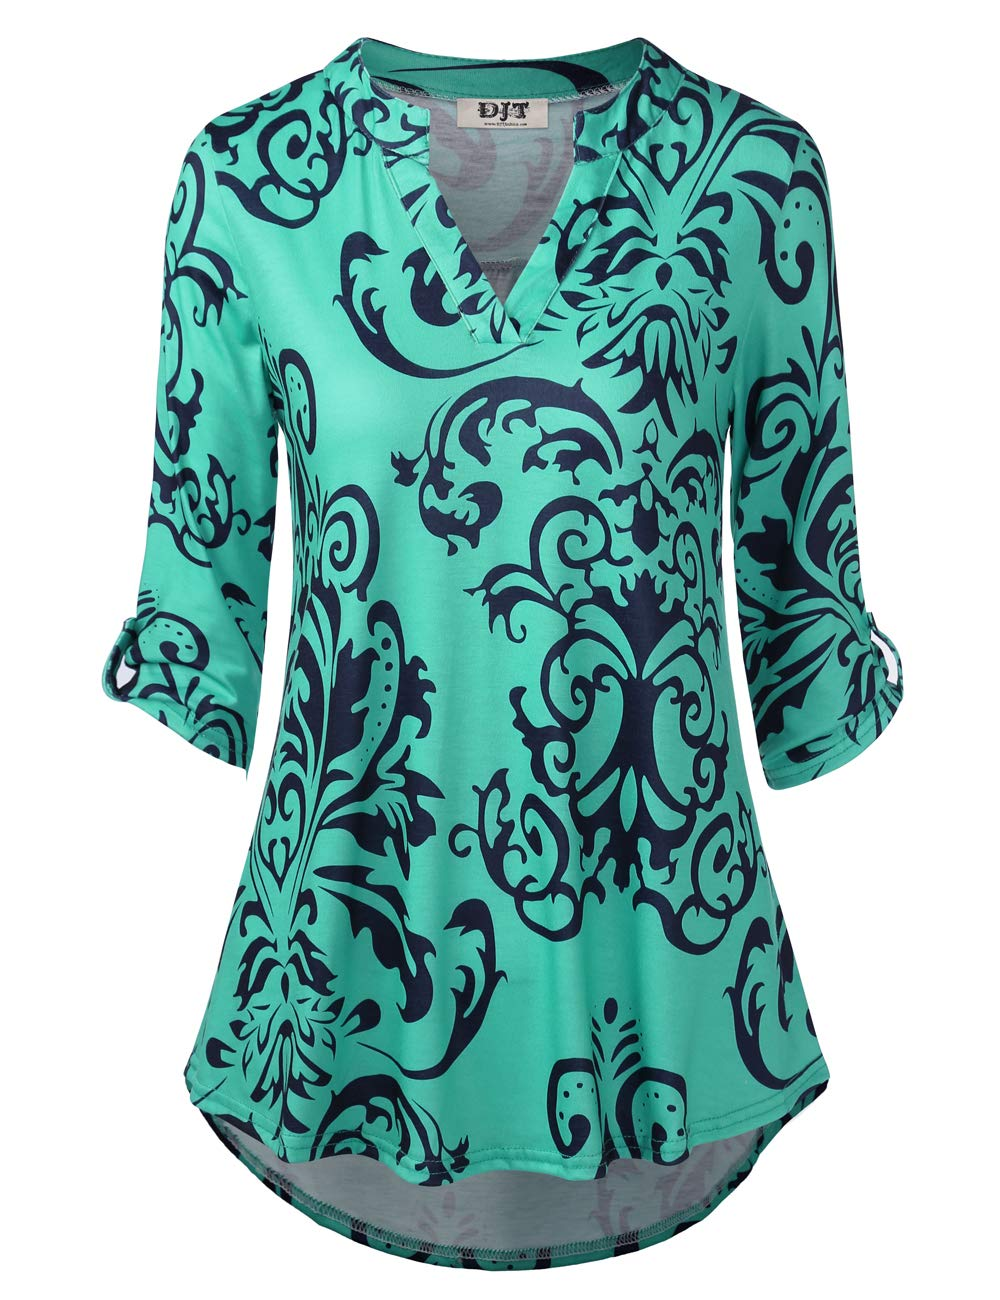 DJT FASHION Tunic Tops Women, Womens Floral Printed Tunic Shirts 3/4 Roll Sleeve Notch Neck Tunic Top XL Green Floral